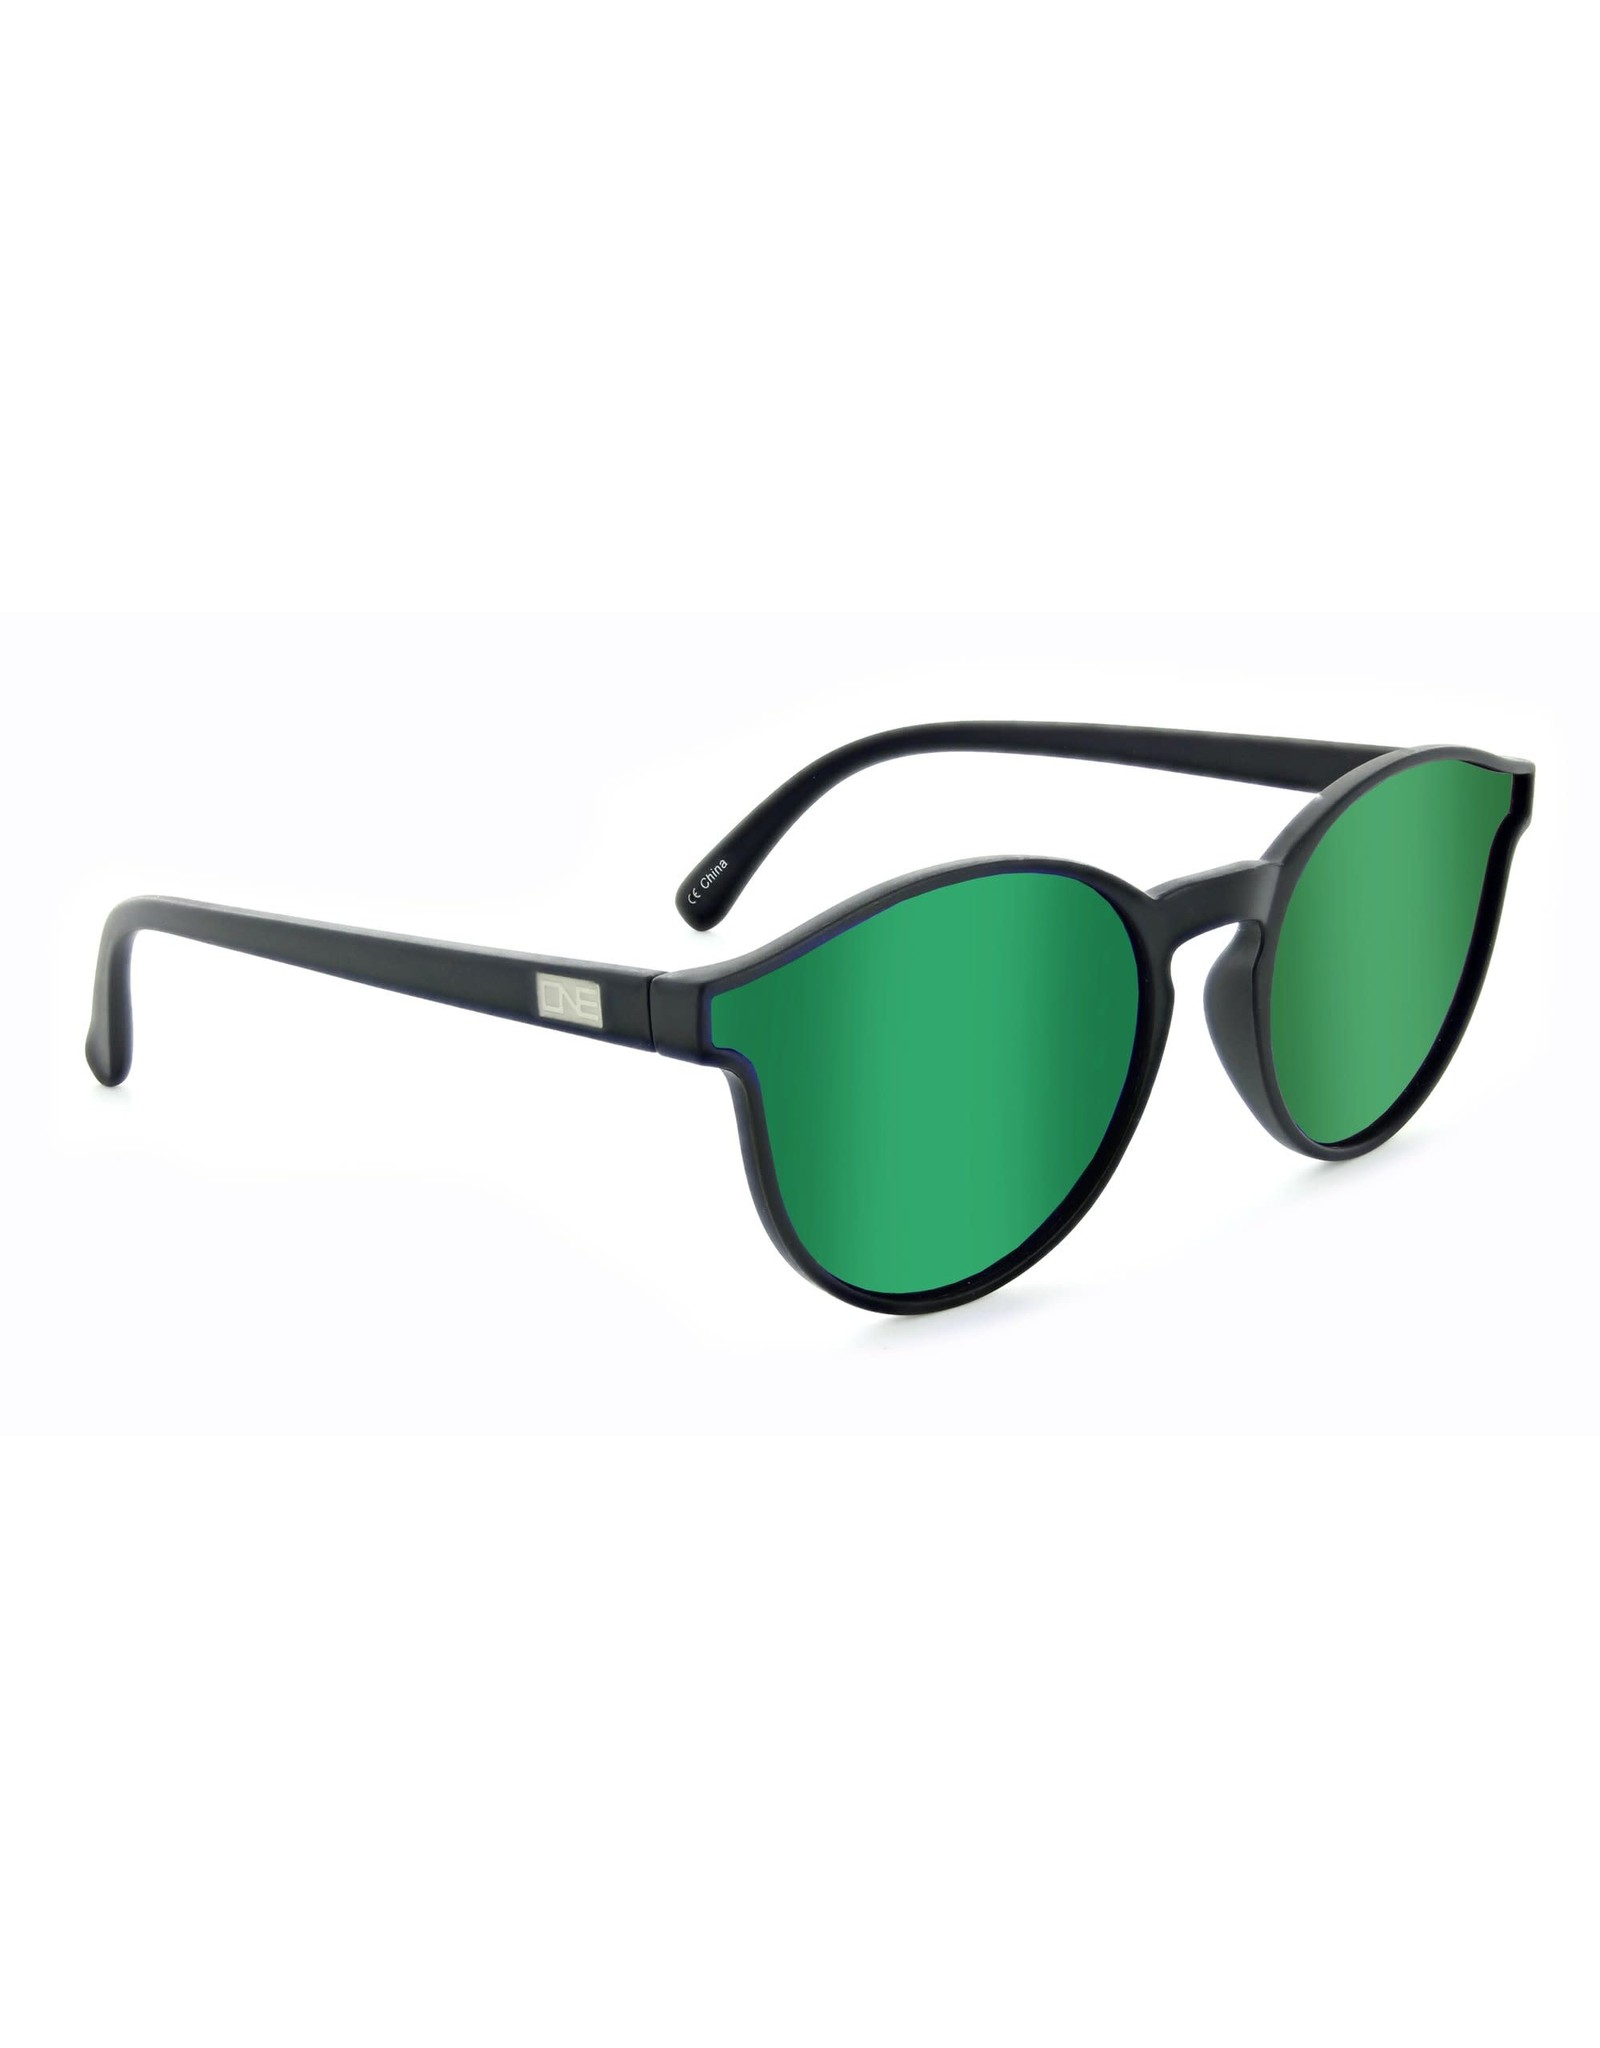 Optic Nerve Optic Nerve Sunglasses: Proviso Matte Black w/ Polarized Smoke w/ Green Mirror Lens